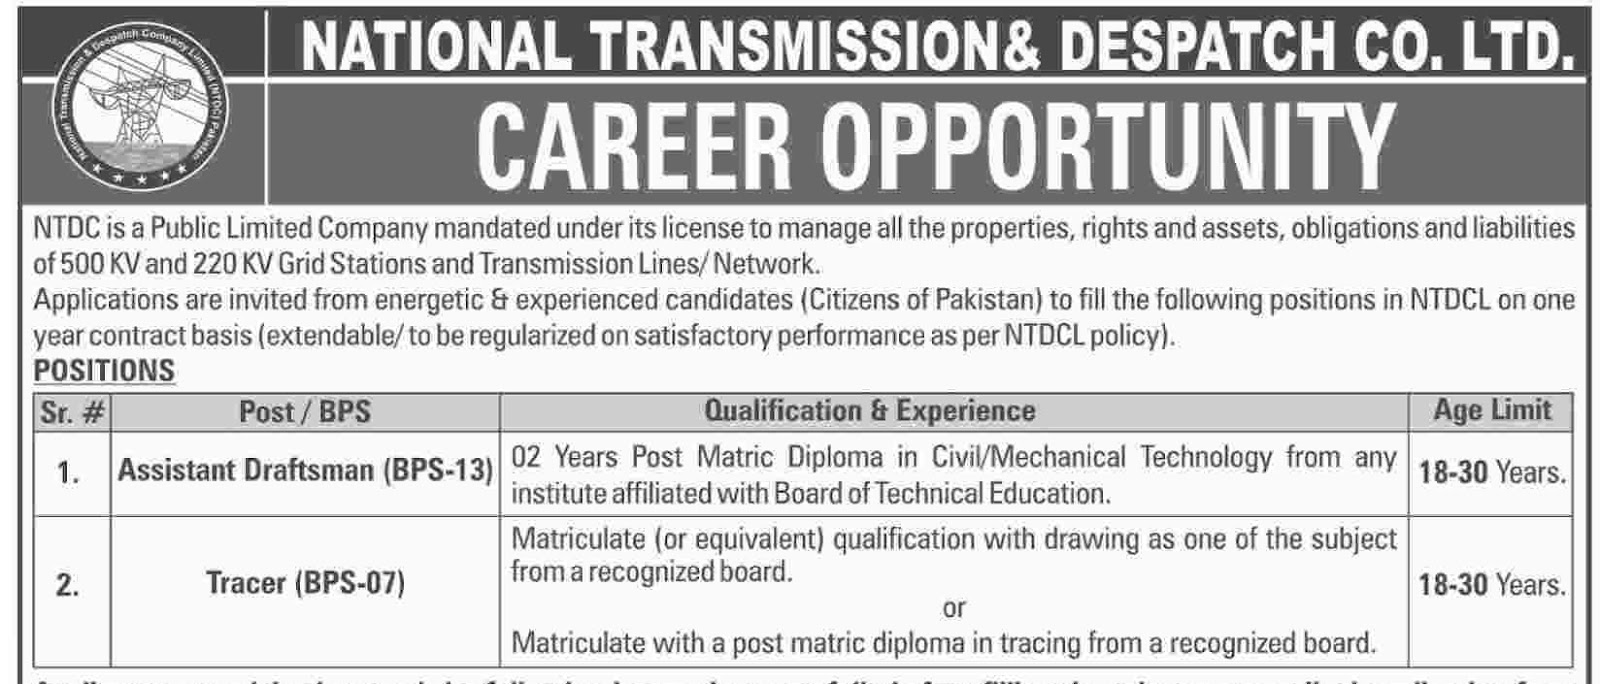 Jobs In National Transmission and Dispatch CO. LTD (NTDC)